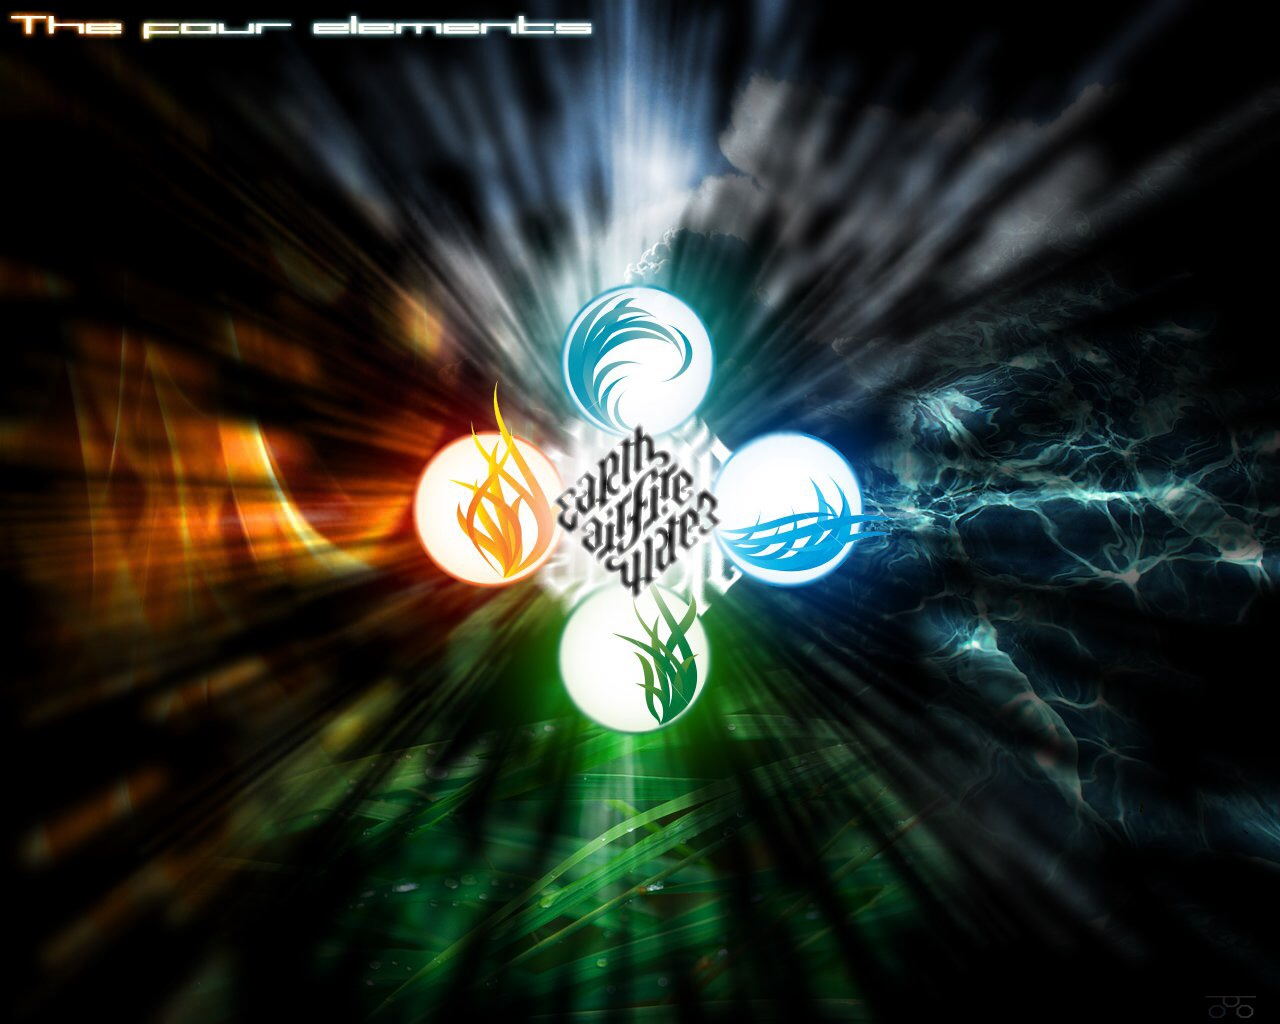 Http Www Fanpop Com Clubs The Four Elements Images 39436376 Title Four Elements Wallpaper